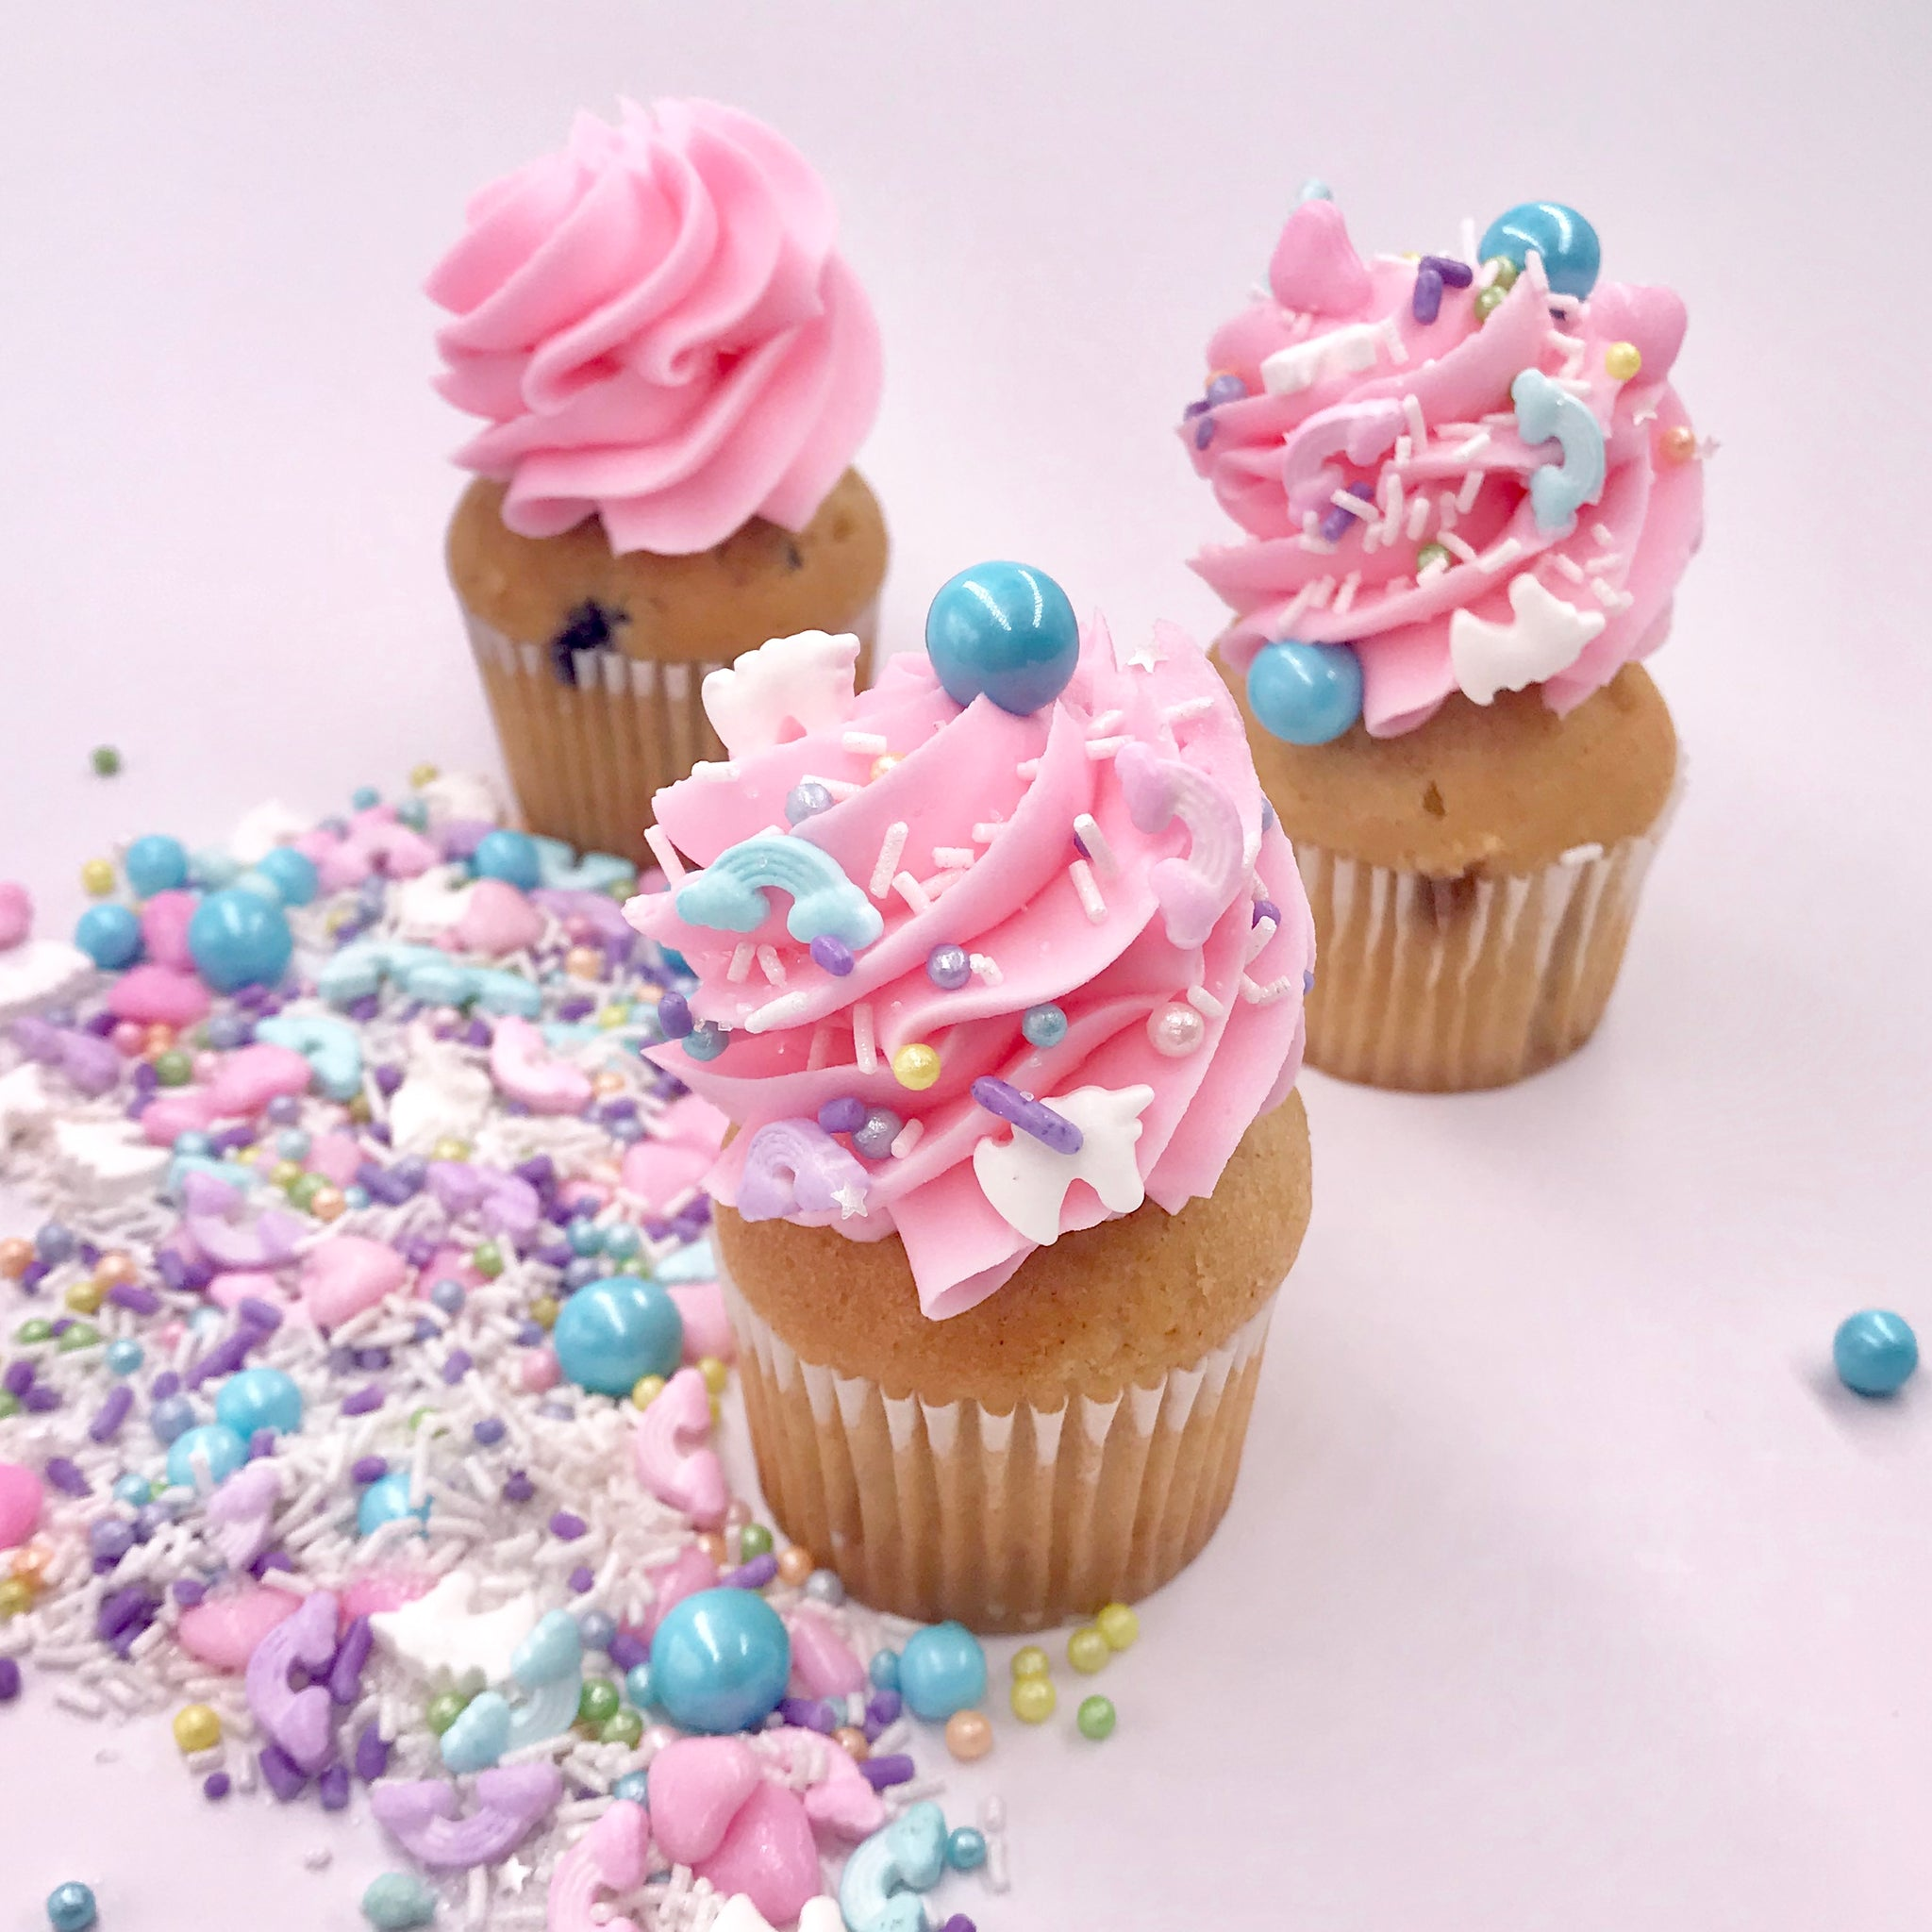 Sprinkles | Giggle Clop Unicorn and Rainbows Sprinkles Mix |  | Edible Decorations  |